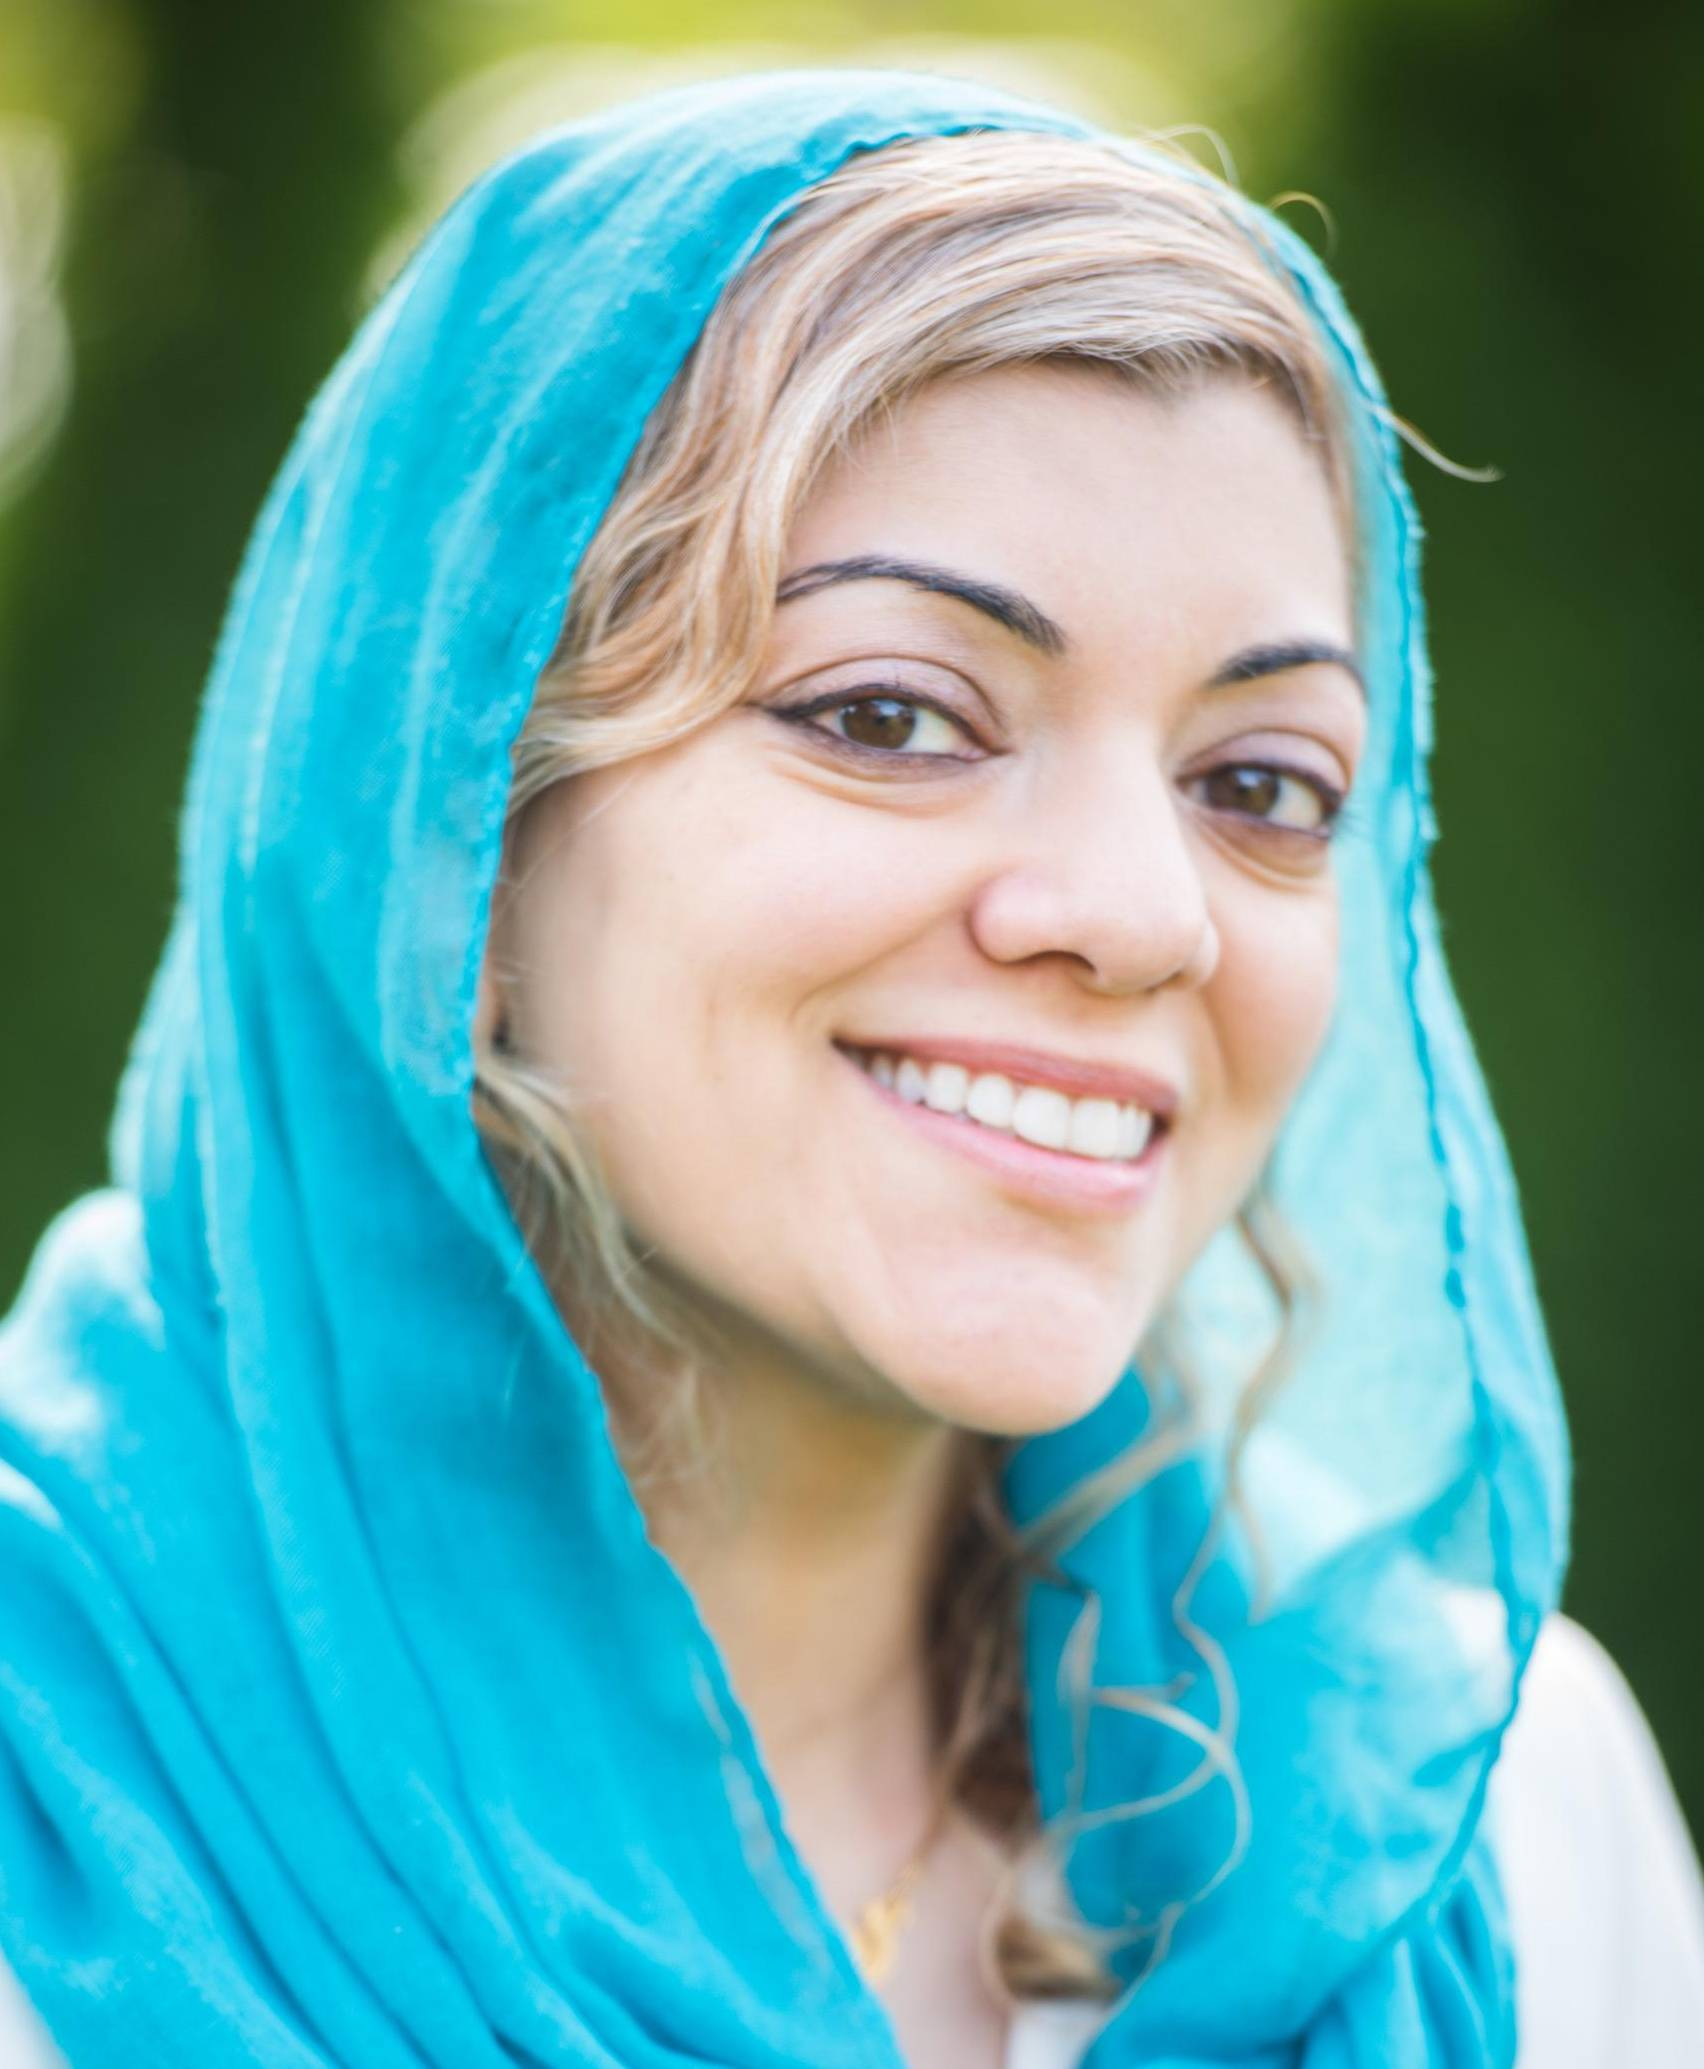 Zahra Suratwala, running for DuPage County board District 1